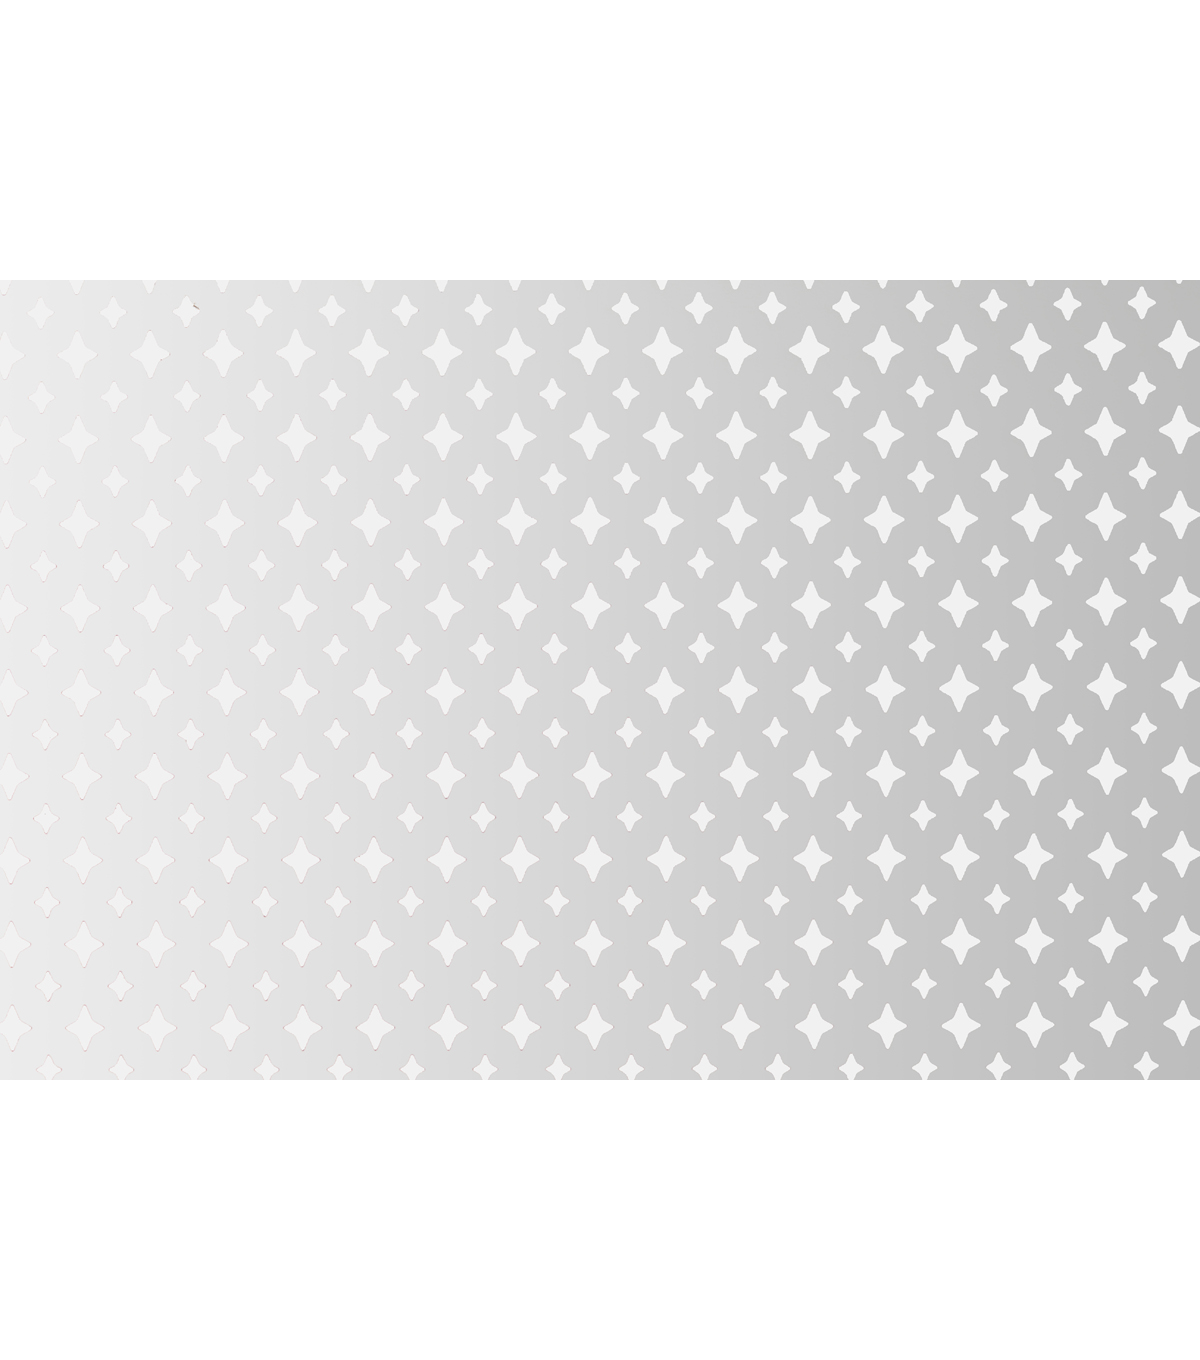 Cricut 12 Pack 12\u0027\u0027x12\u0027\u0027 Deluxe Foil Embossed Papers-Silver & White